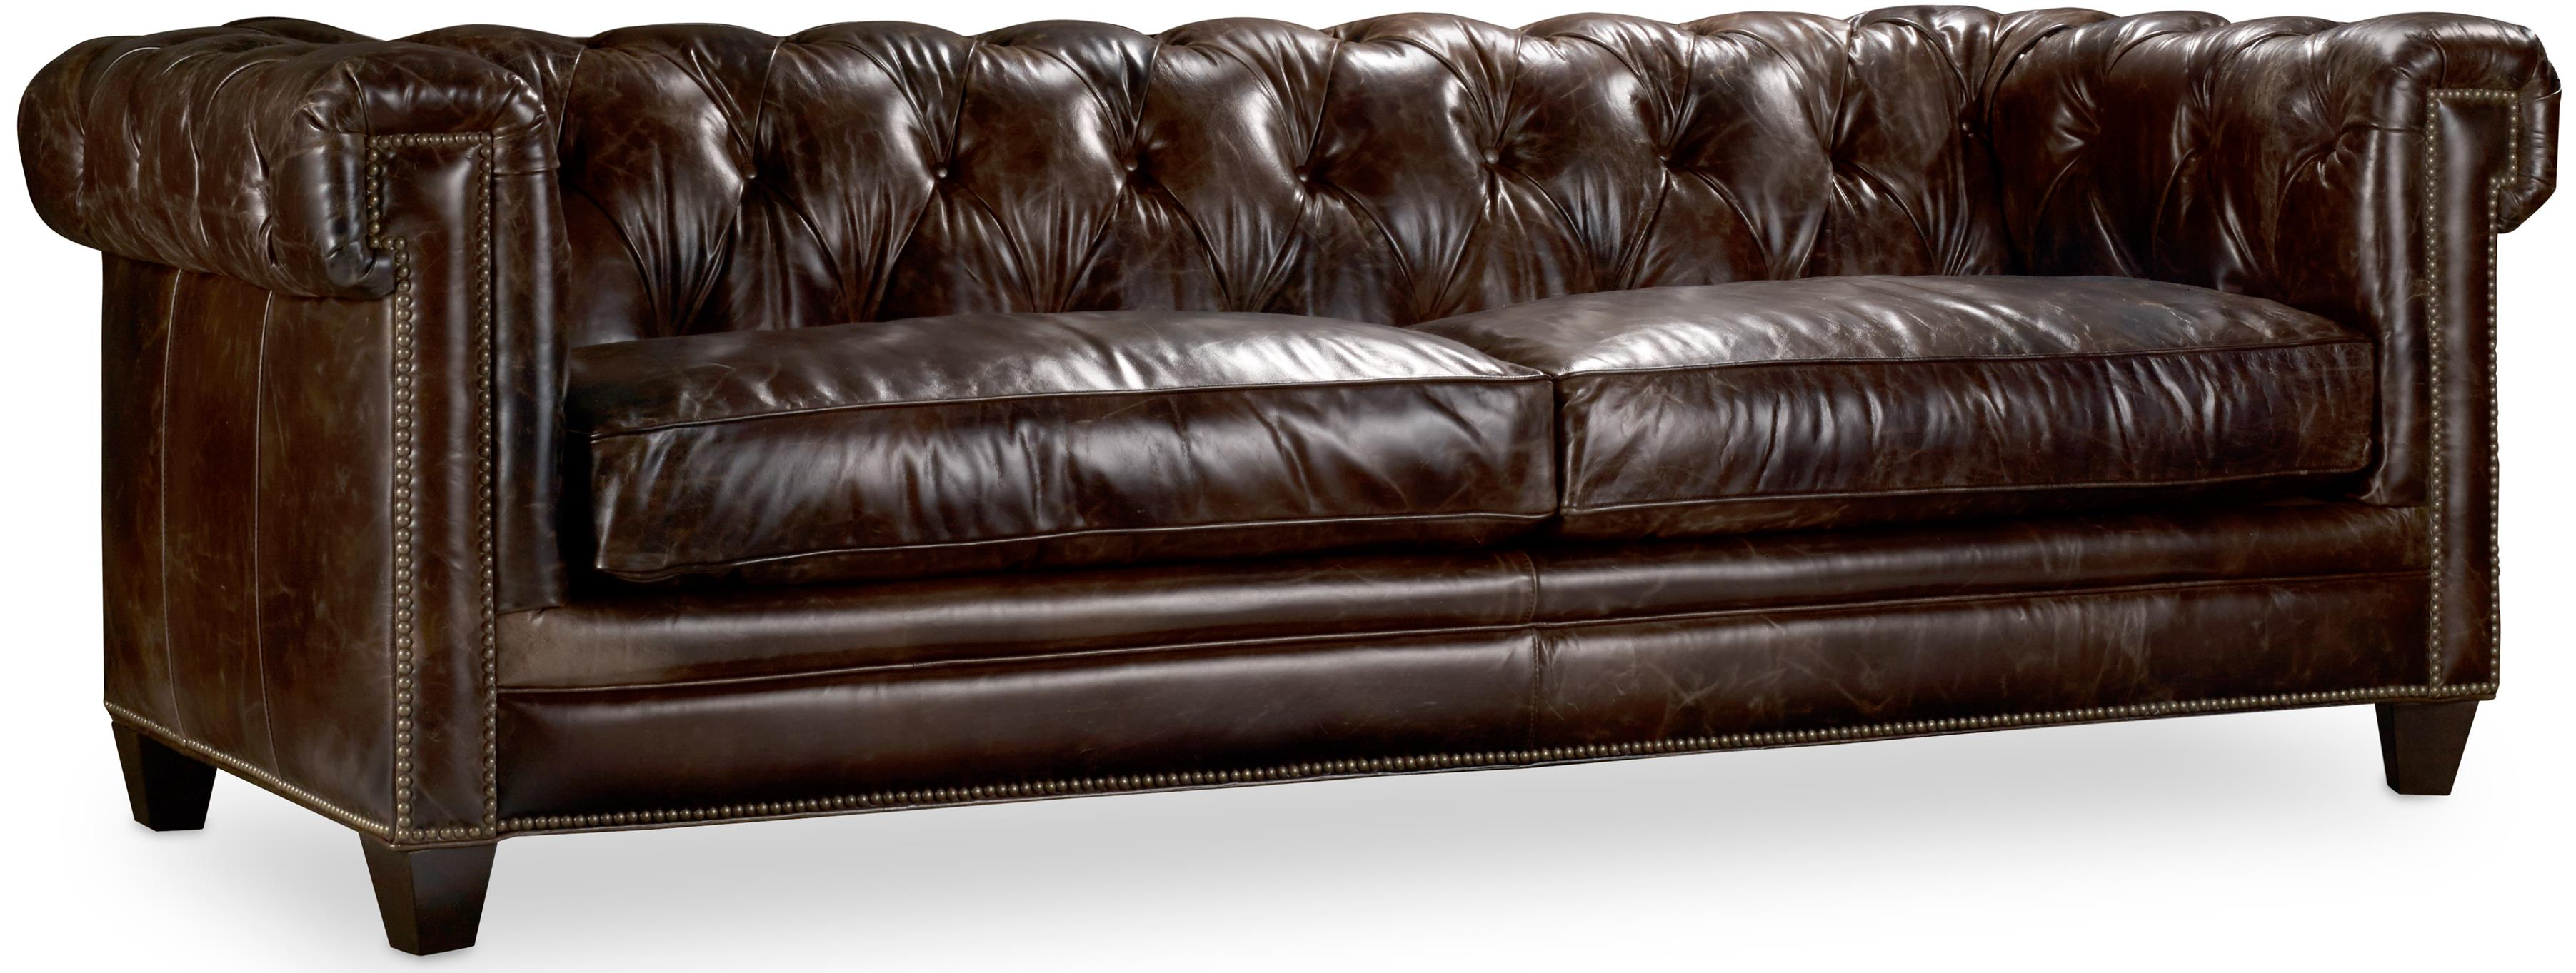 Transitional Chesterfield Sofa with Track Arms and Nailheads by